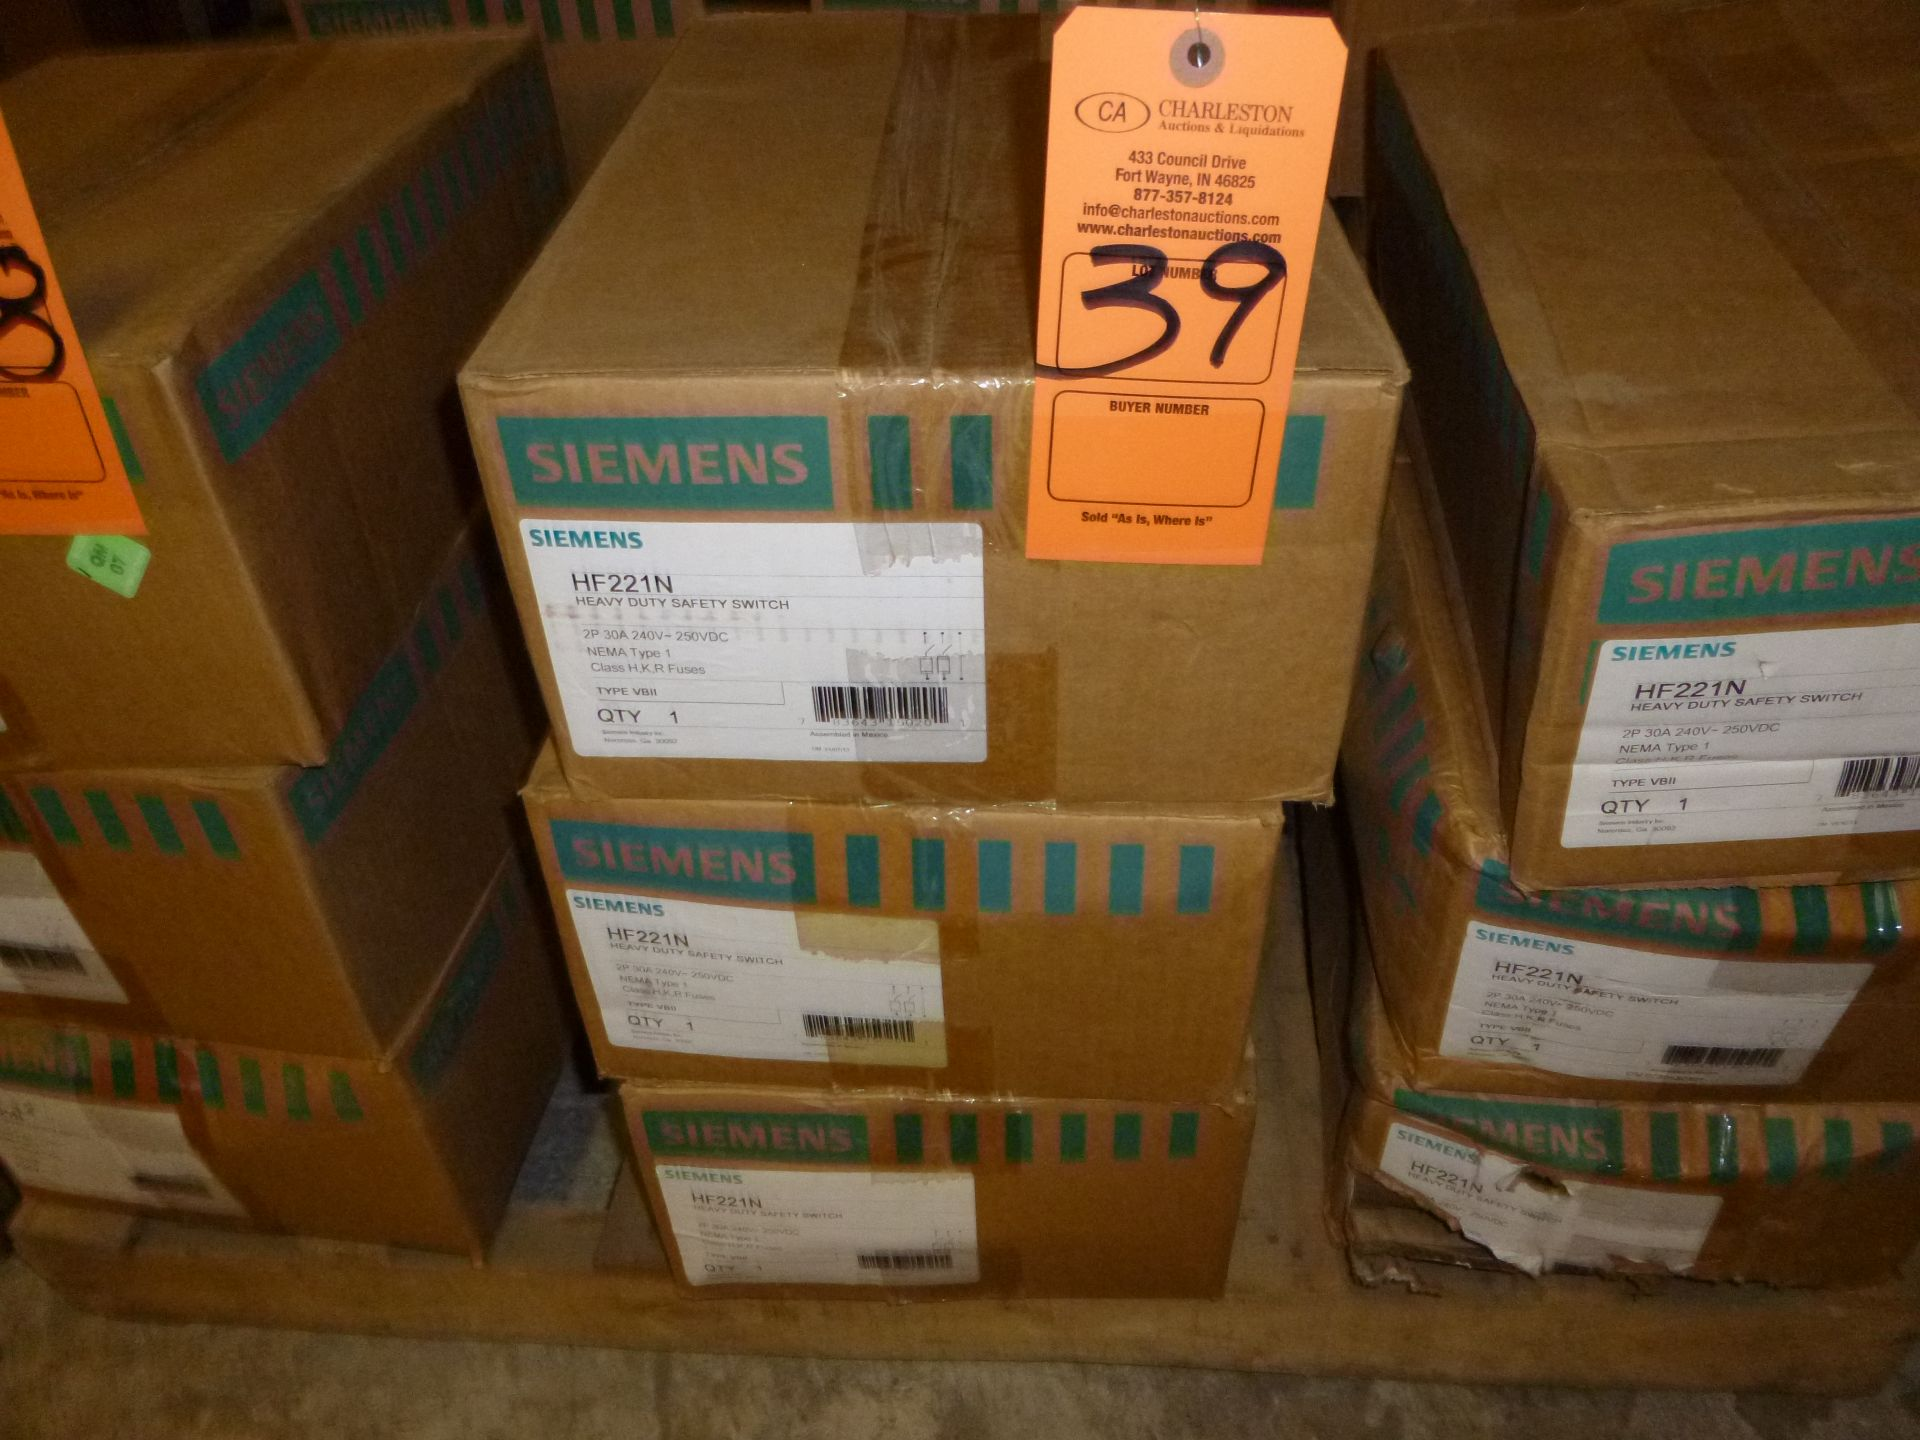 Lot 39 - Qty 3 Siemens model HF221N, heavy duty safety switch, new in boxes